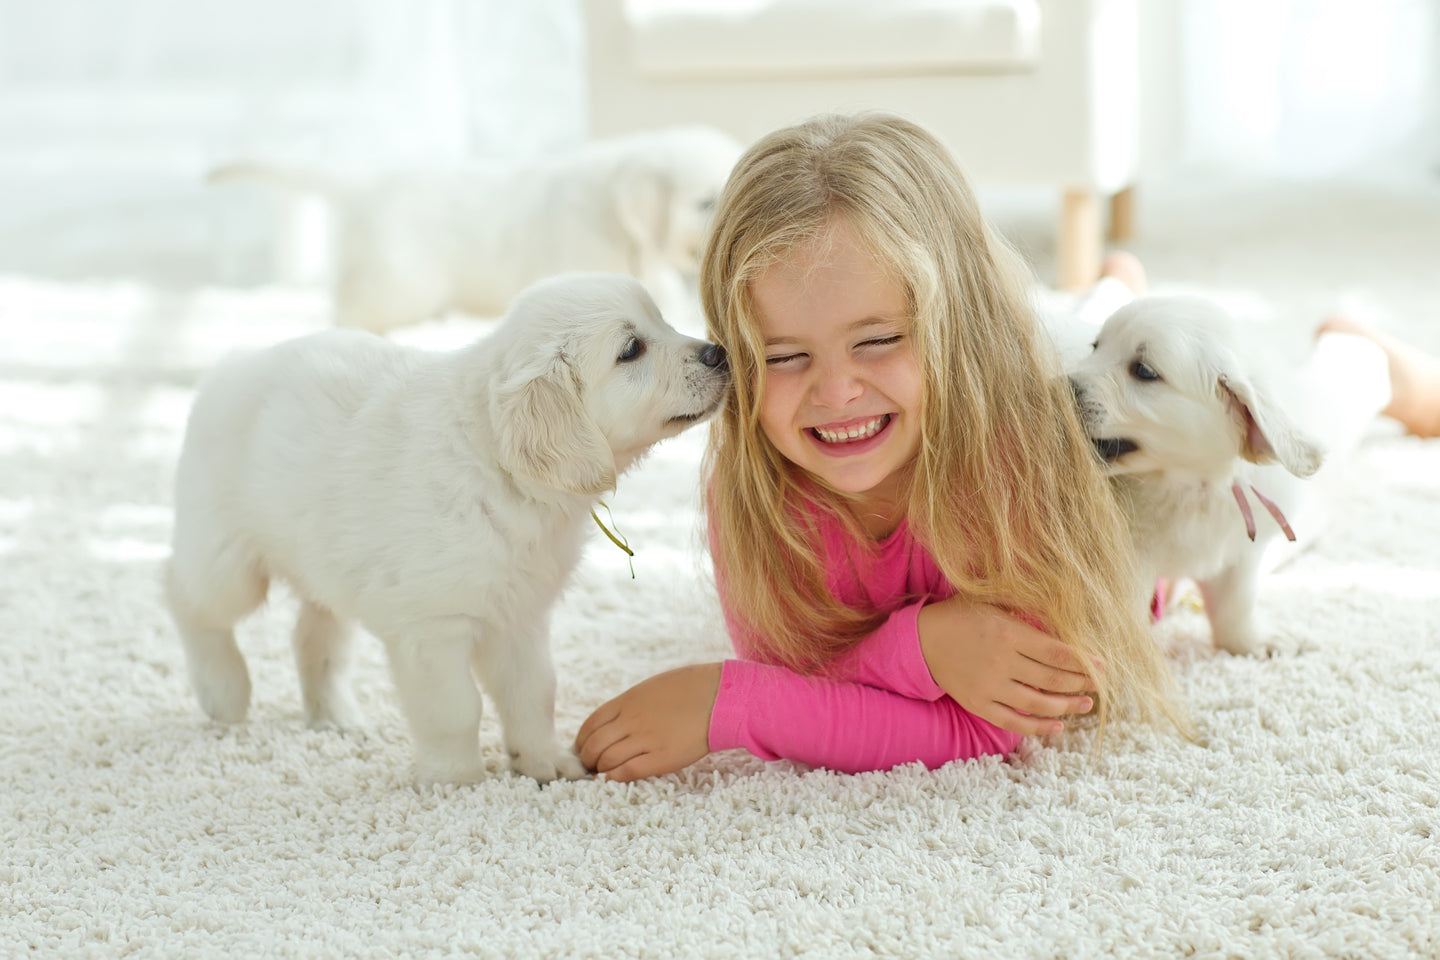 Green non toxic carpet cleaning services in Michigan